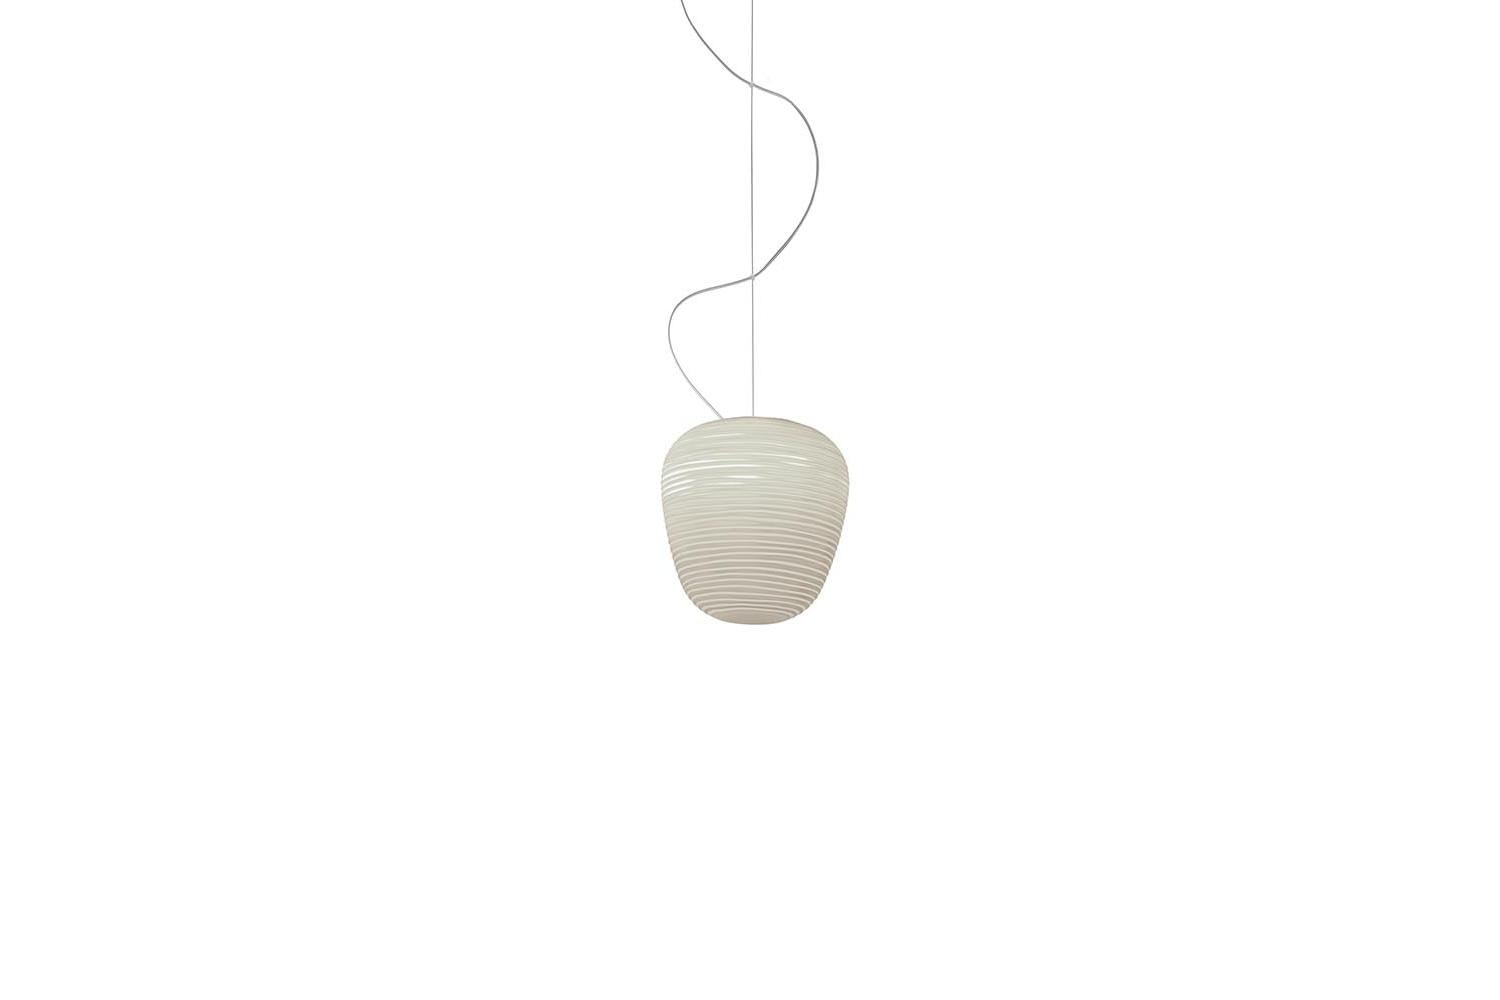 Rituals 3 Suspension Lamp by Ludovica & Roberto Palomba for Foscarini